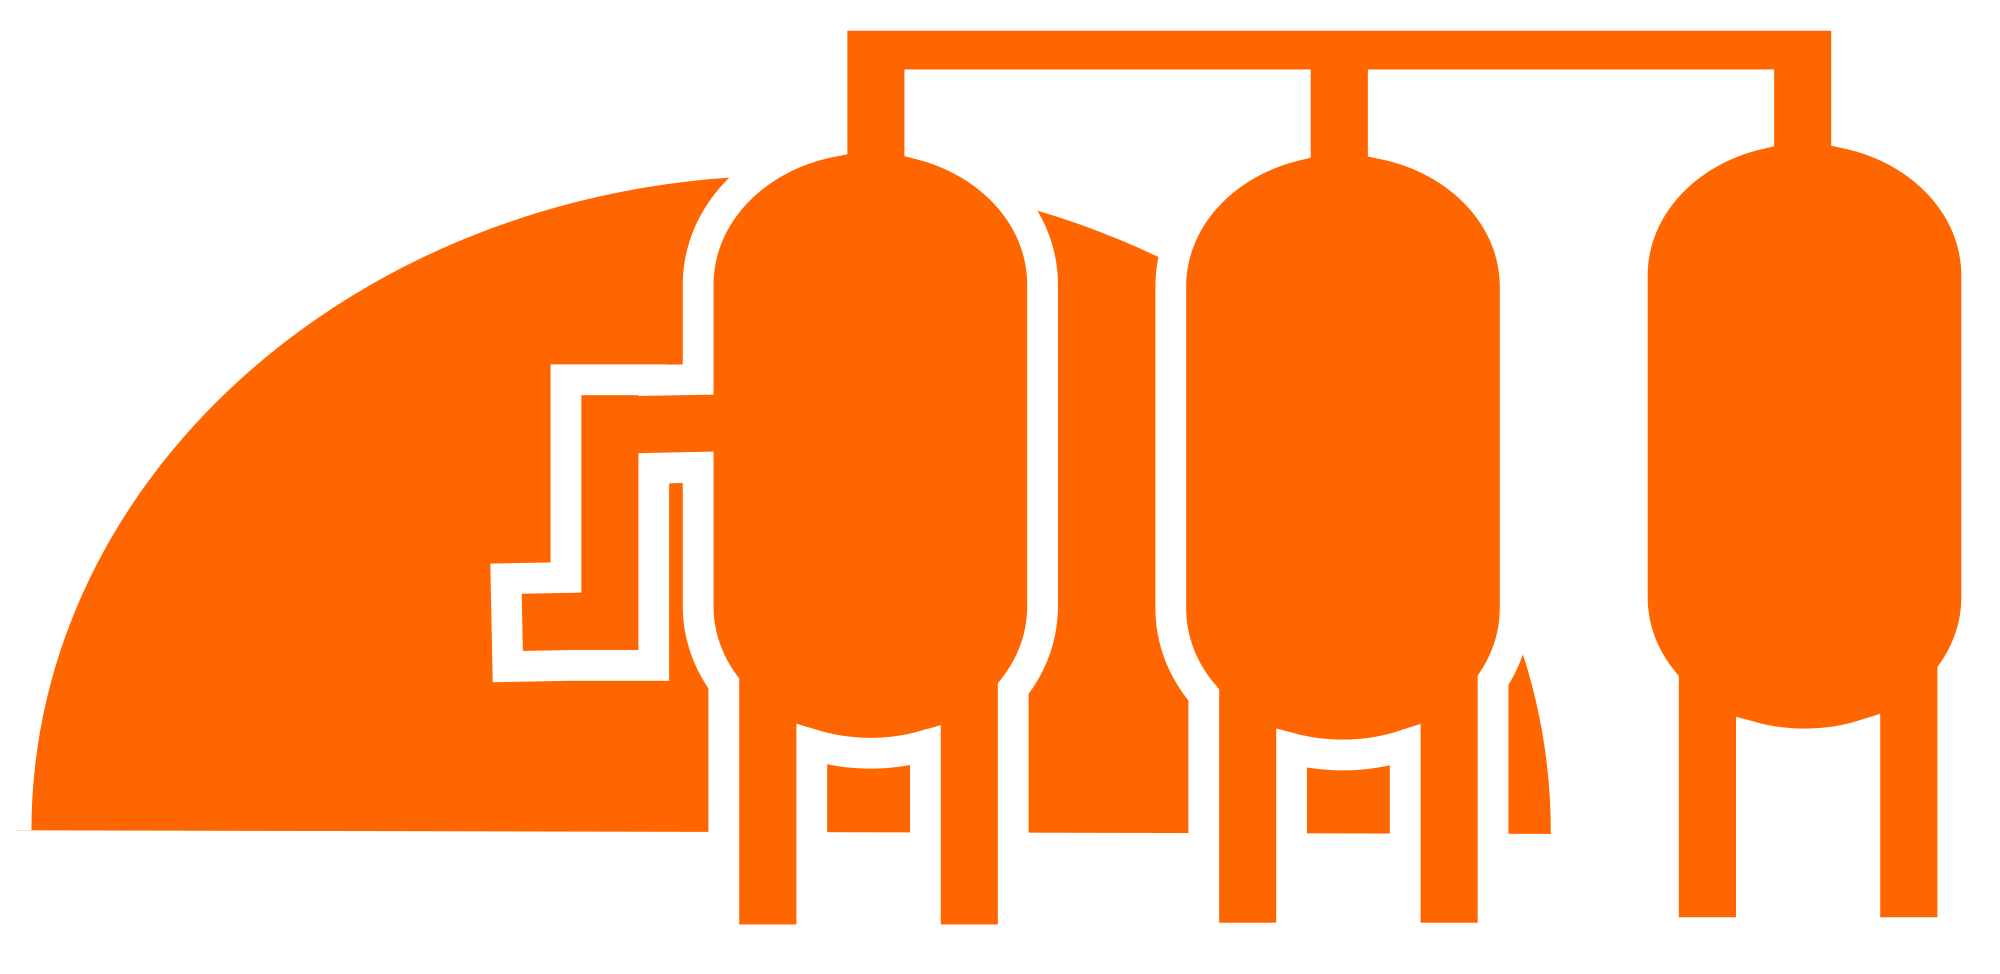 Factories factory icon